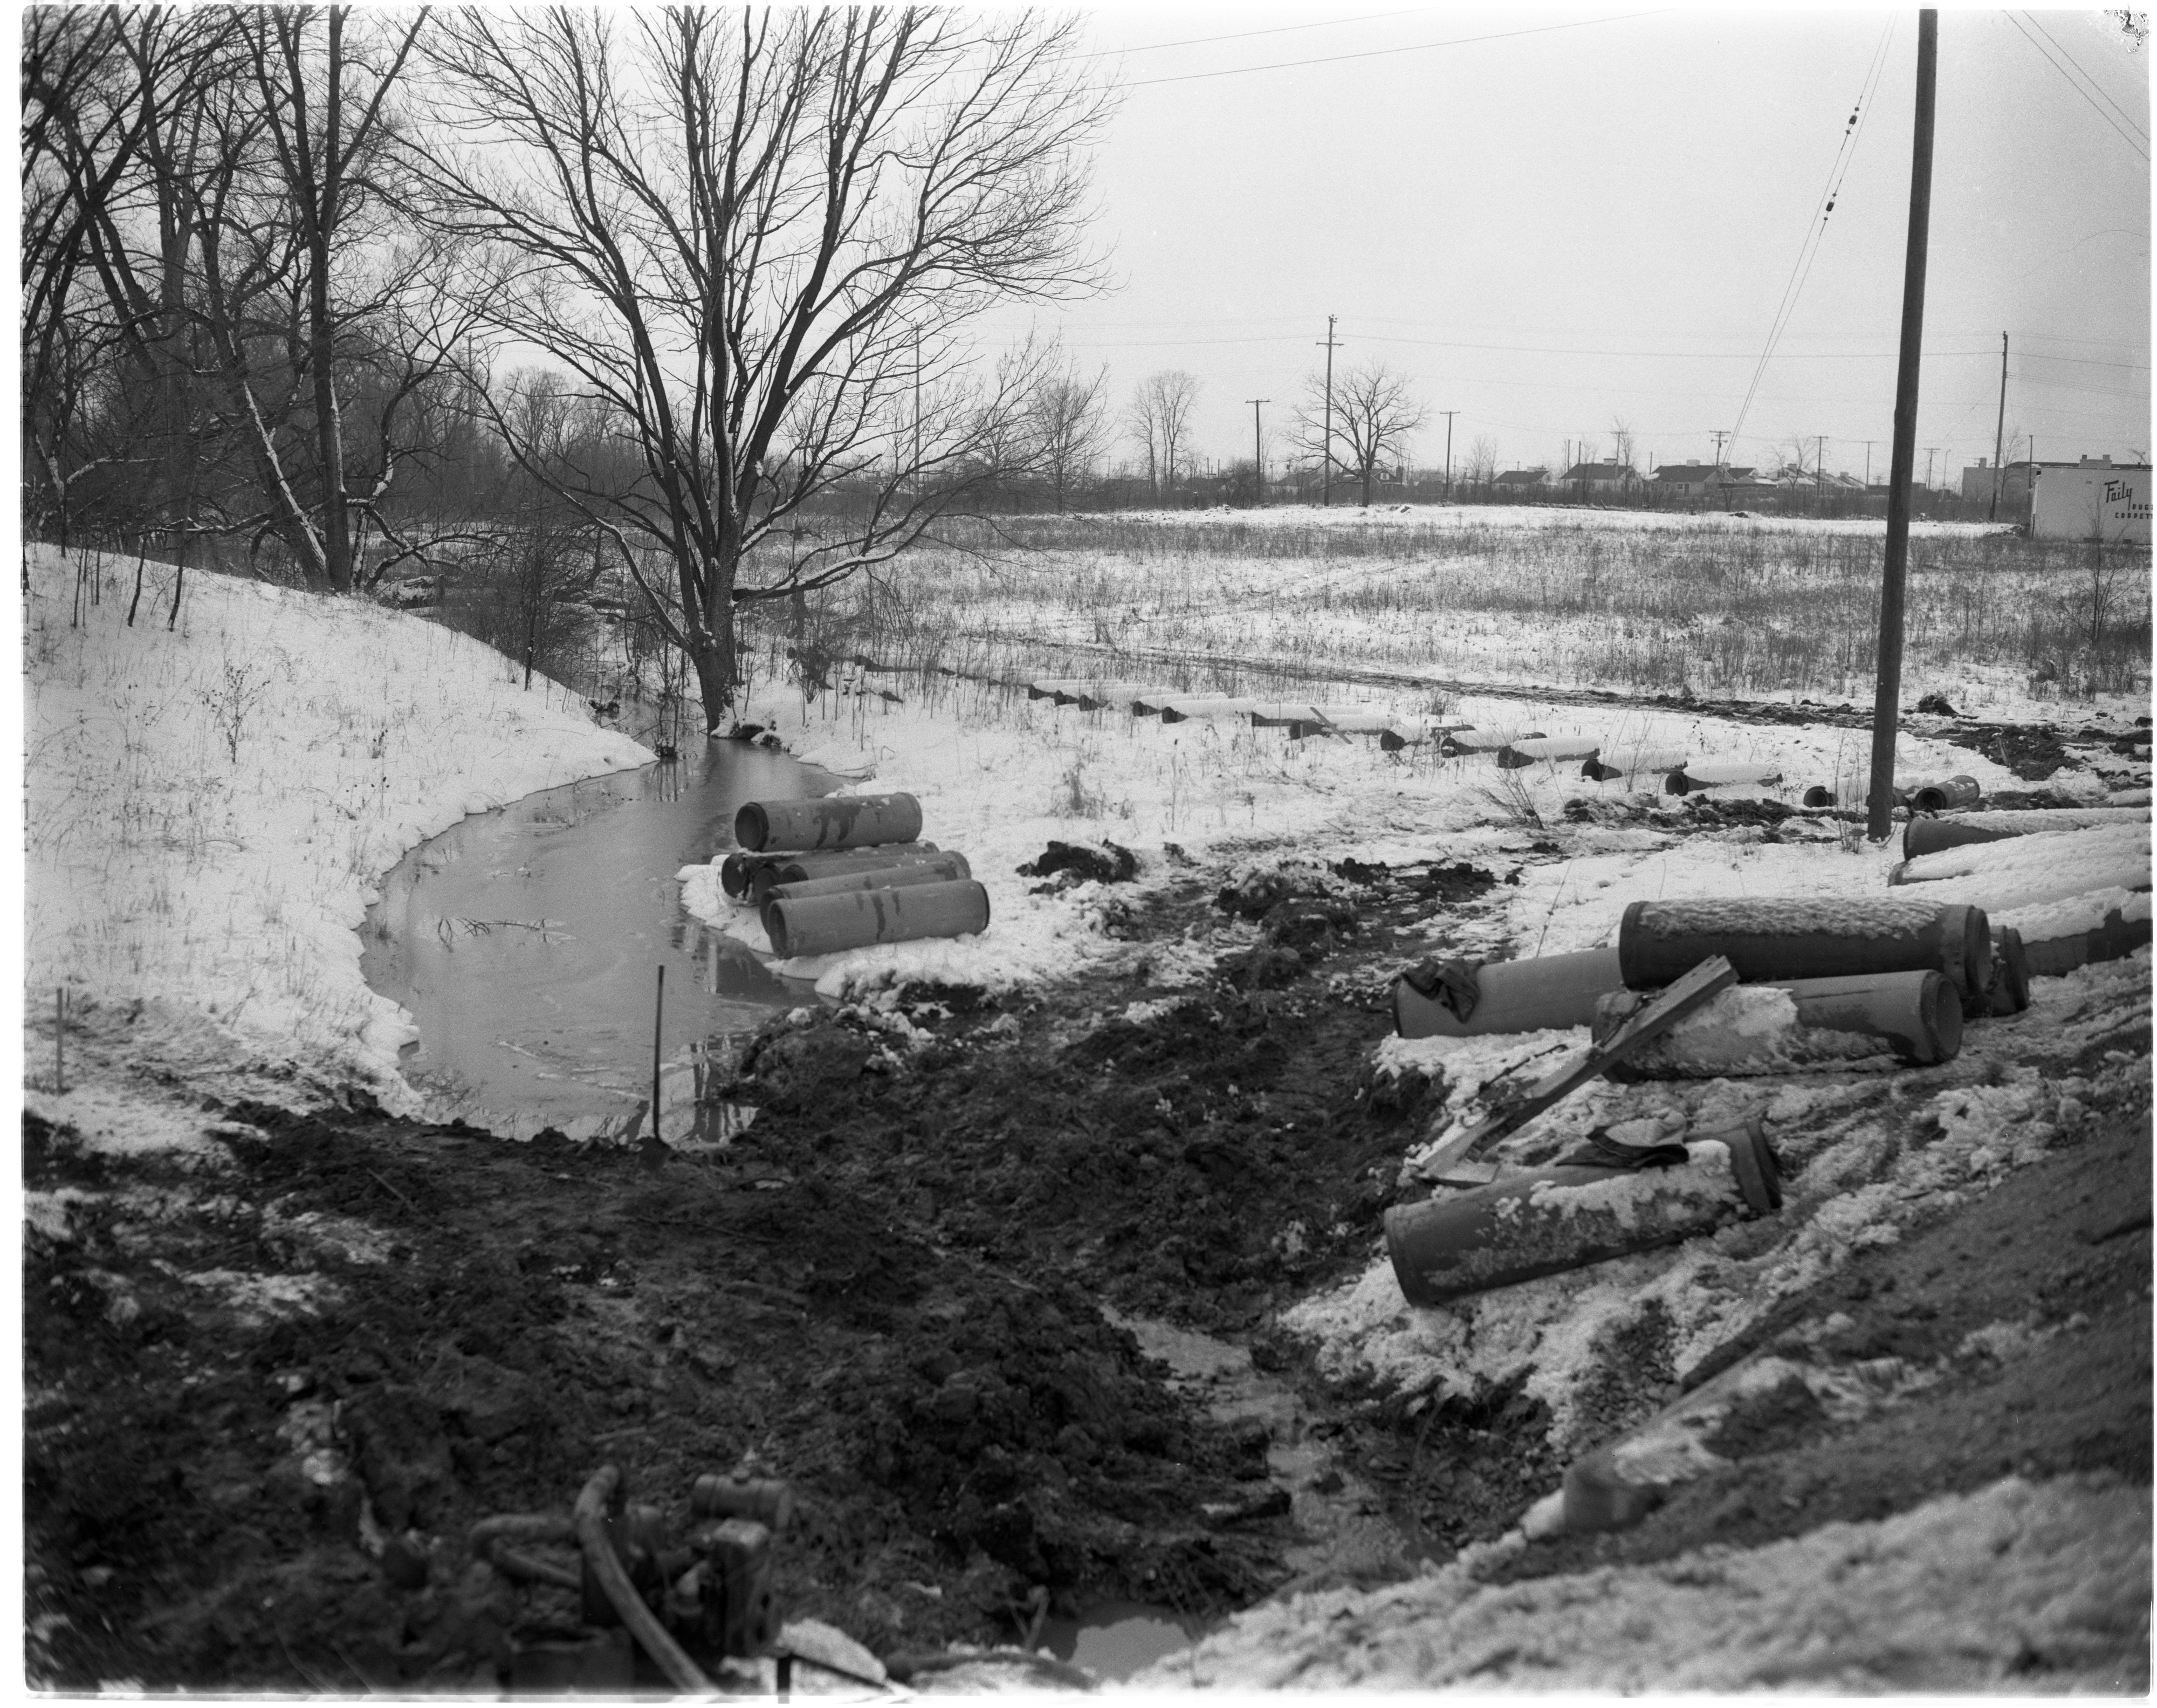 Construction on Swift Run Drain in Pittsfield Township, February 1957 image